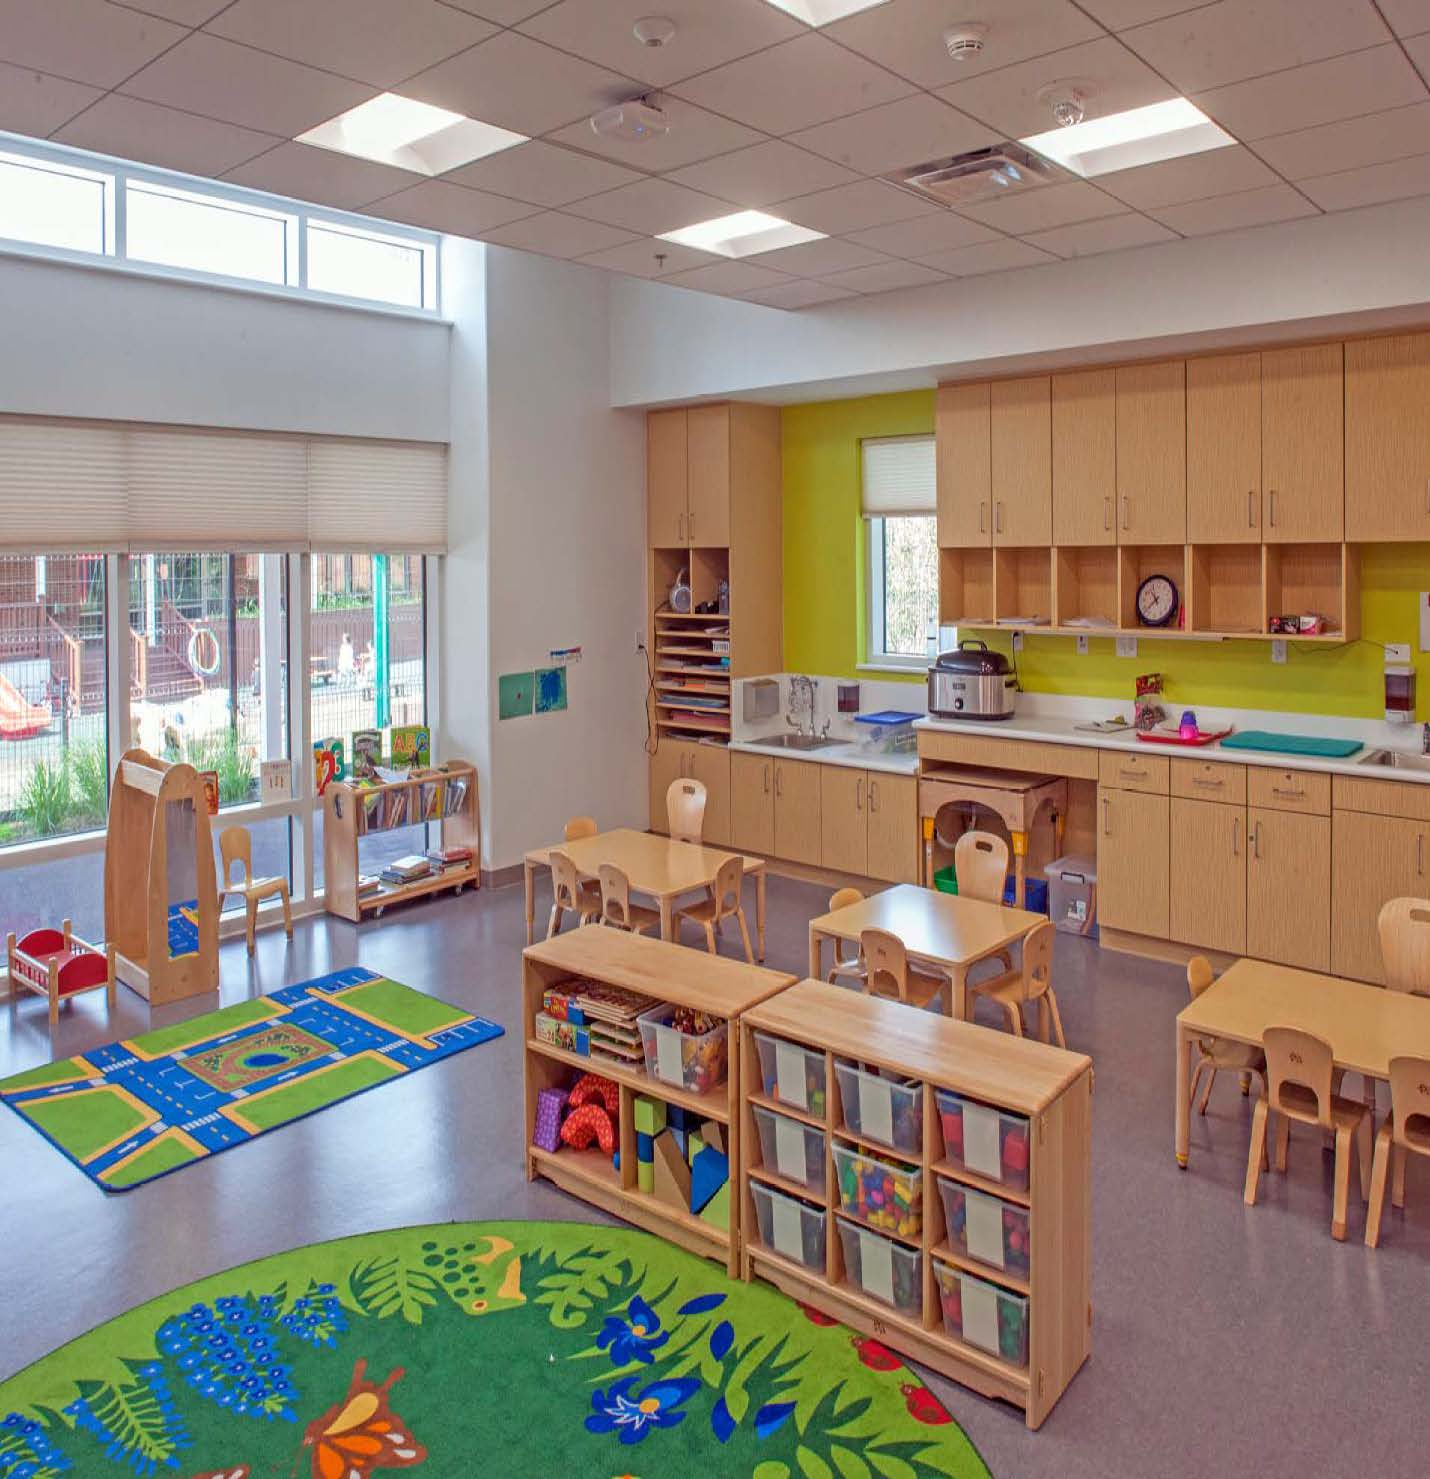 Silver leed certification awarded to the new northwest child care silver leed certification awarded to the new northwest child care center xflitez Choice Image